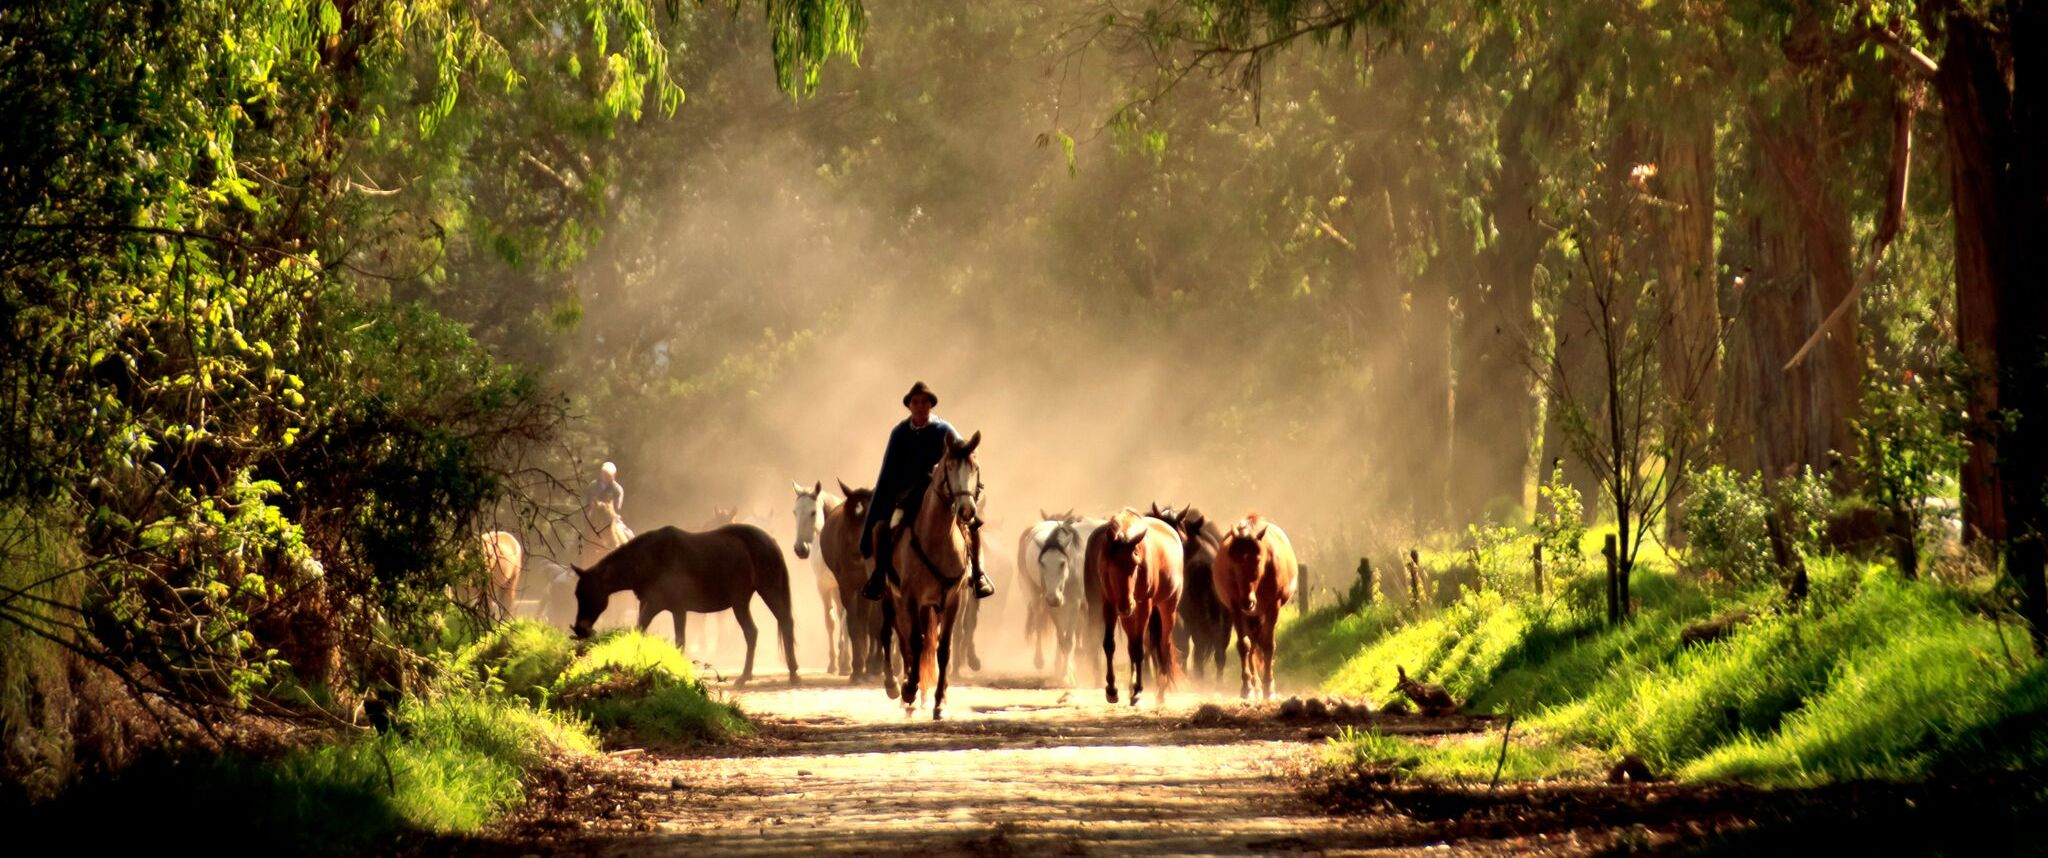 horses-central-highlands-ecuador